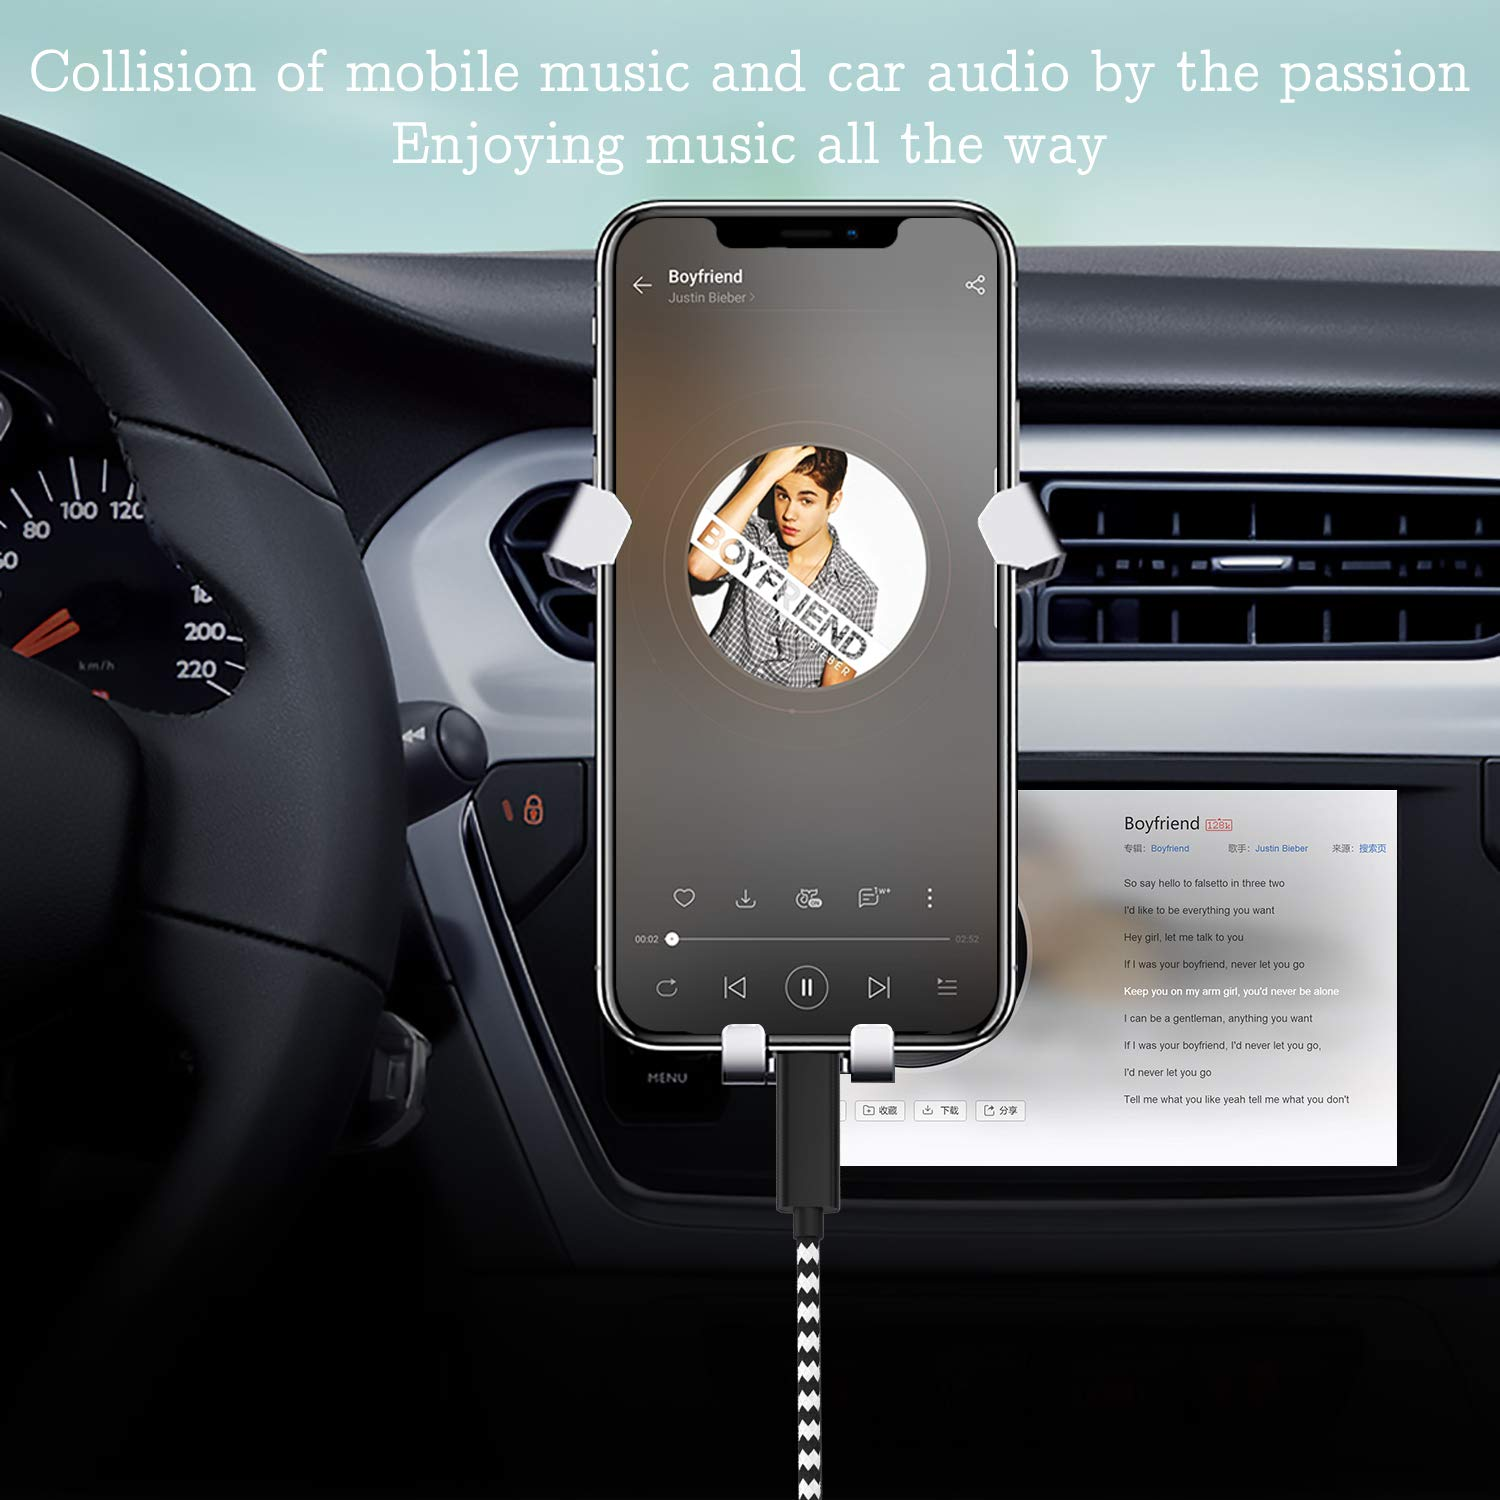 for Phone XS//XS Max//X//8//8 Plus//7//7Plus Pod Pad,Home//Car Stereo,Speaker,Headphone iUKUS Car Aux Cable Compatible with Phone XS Phone 7 Audio Aux Cord iOS Phone 3.5mm Aux Cable Volume Control